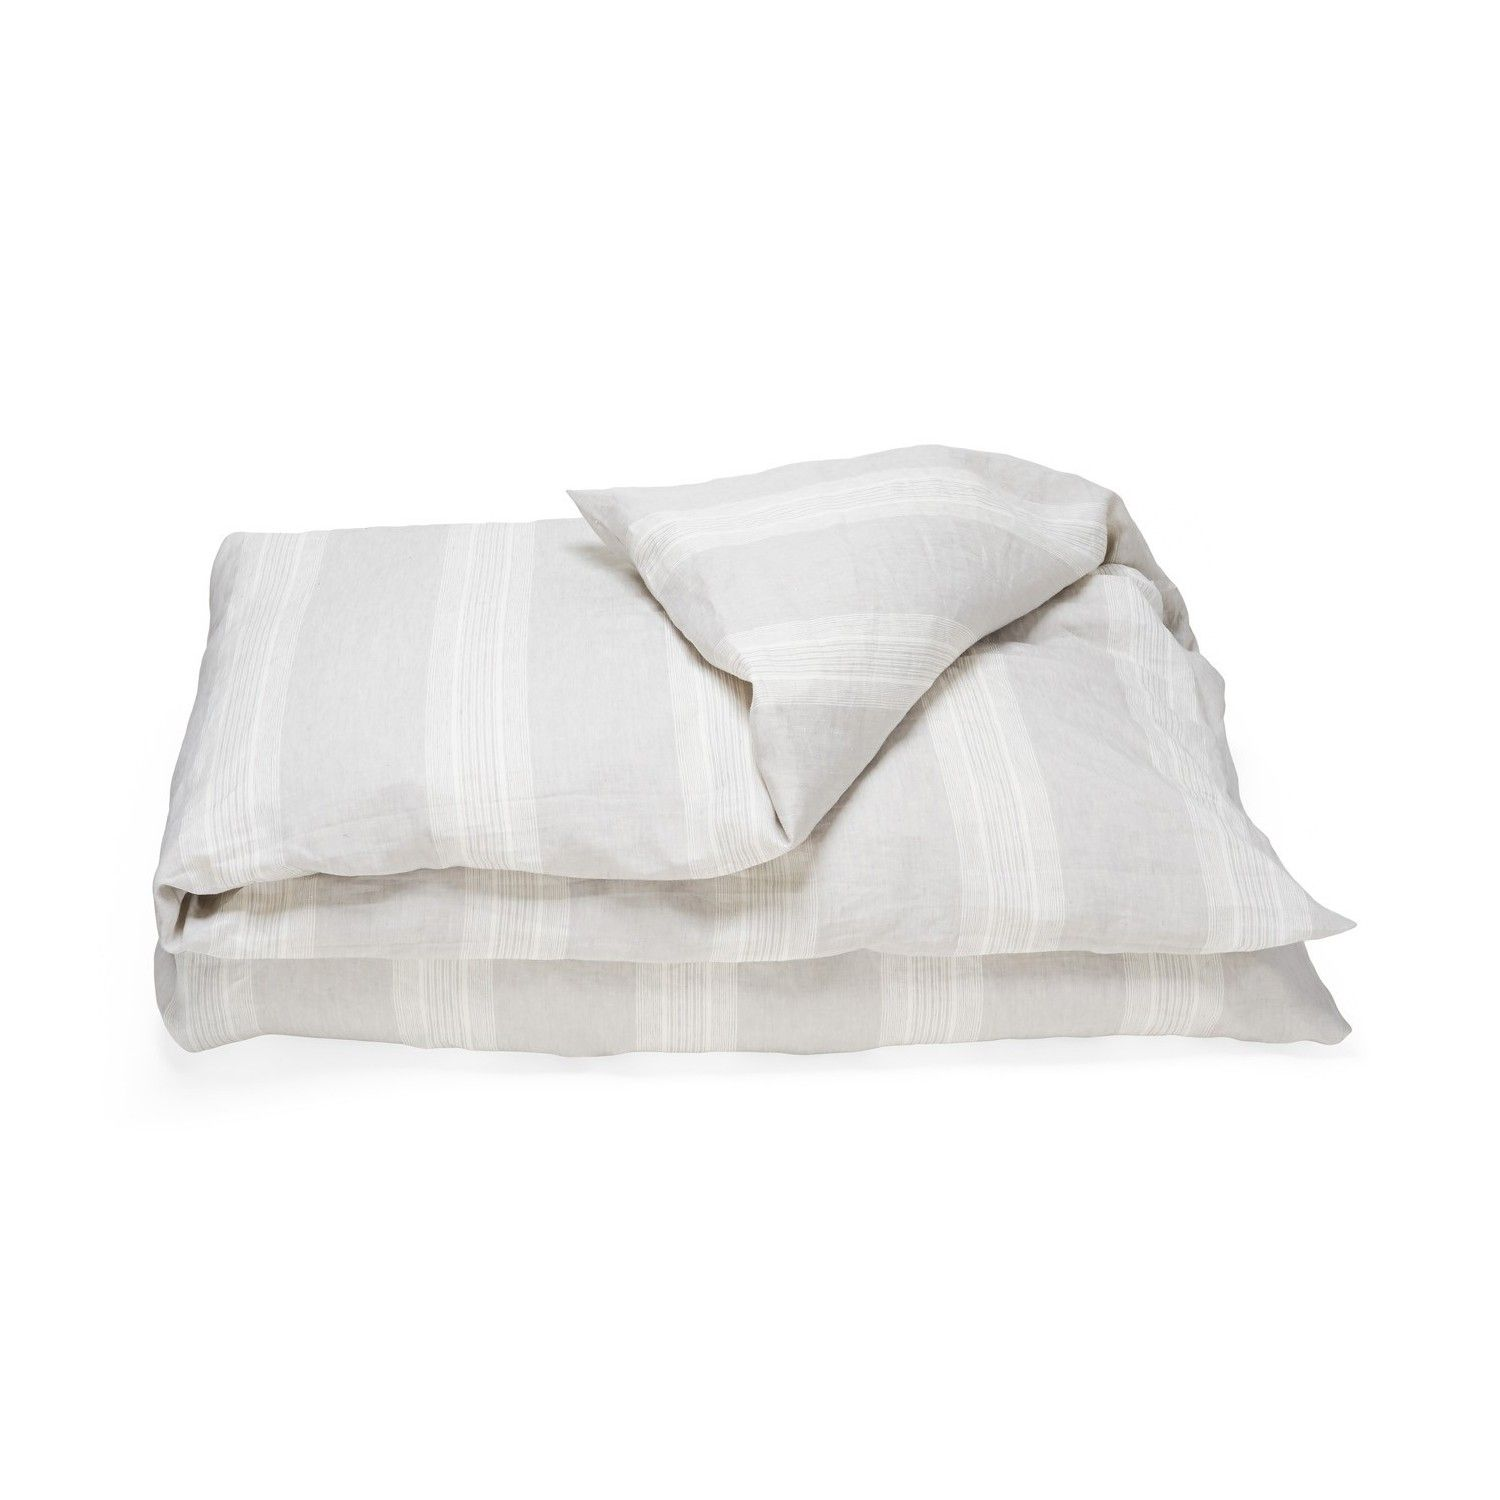 Libeco Sisco Bedding  Made from natural Belgian linen, the Santiago pillowcase is pre-washed for that soft, smooth feel. Embodying the true look of linen in cool, crisp colors, the Santiago collection blends casual comfort with upscale luxury for an always elegant look.